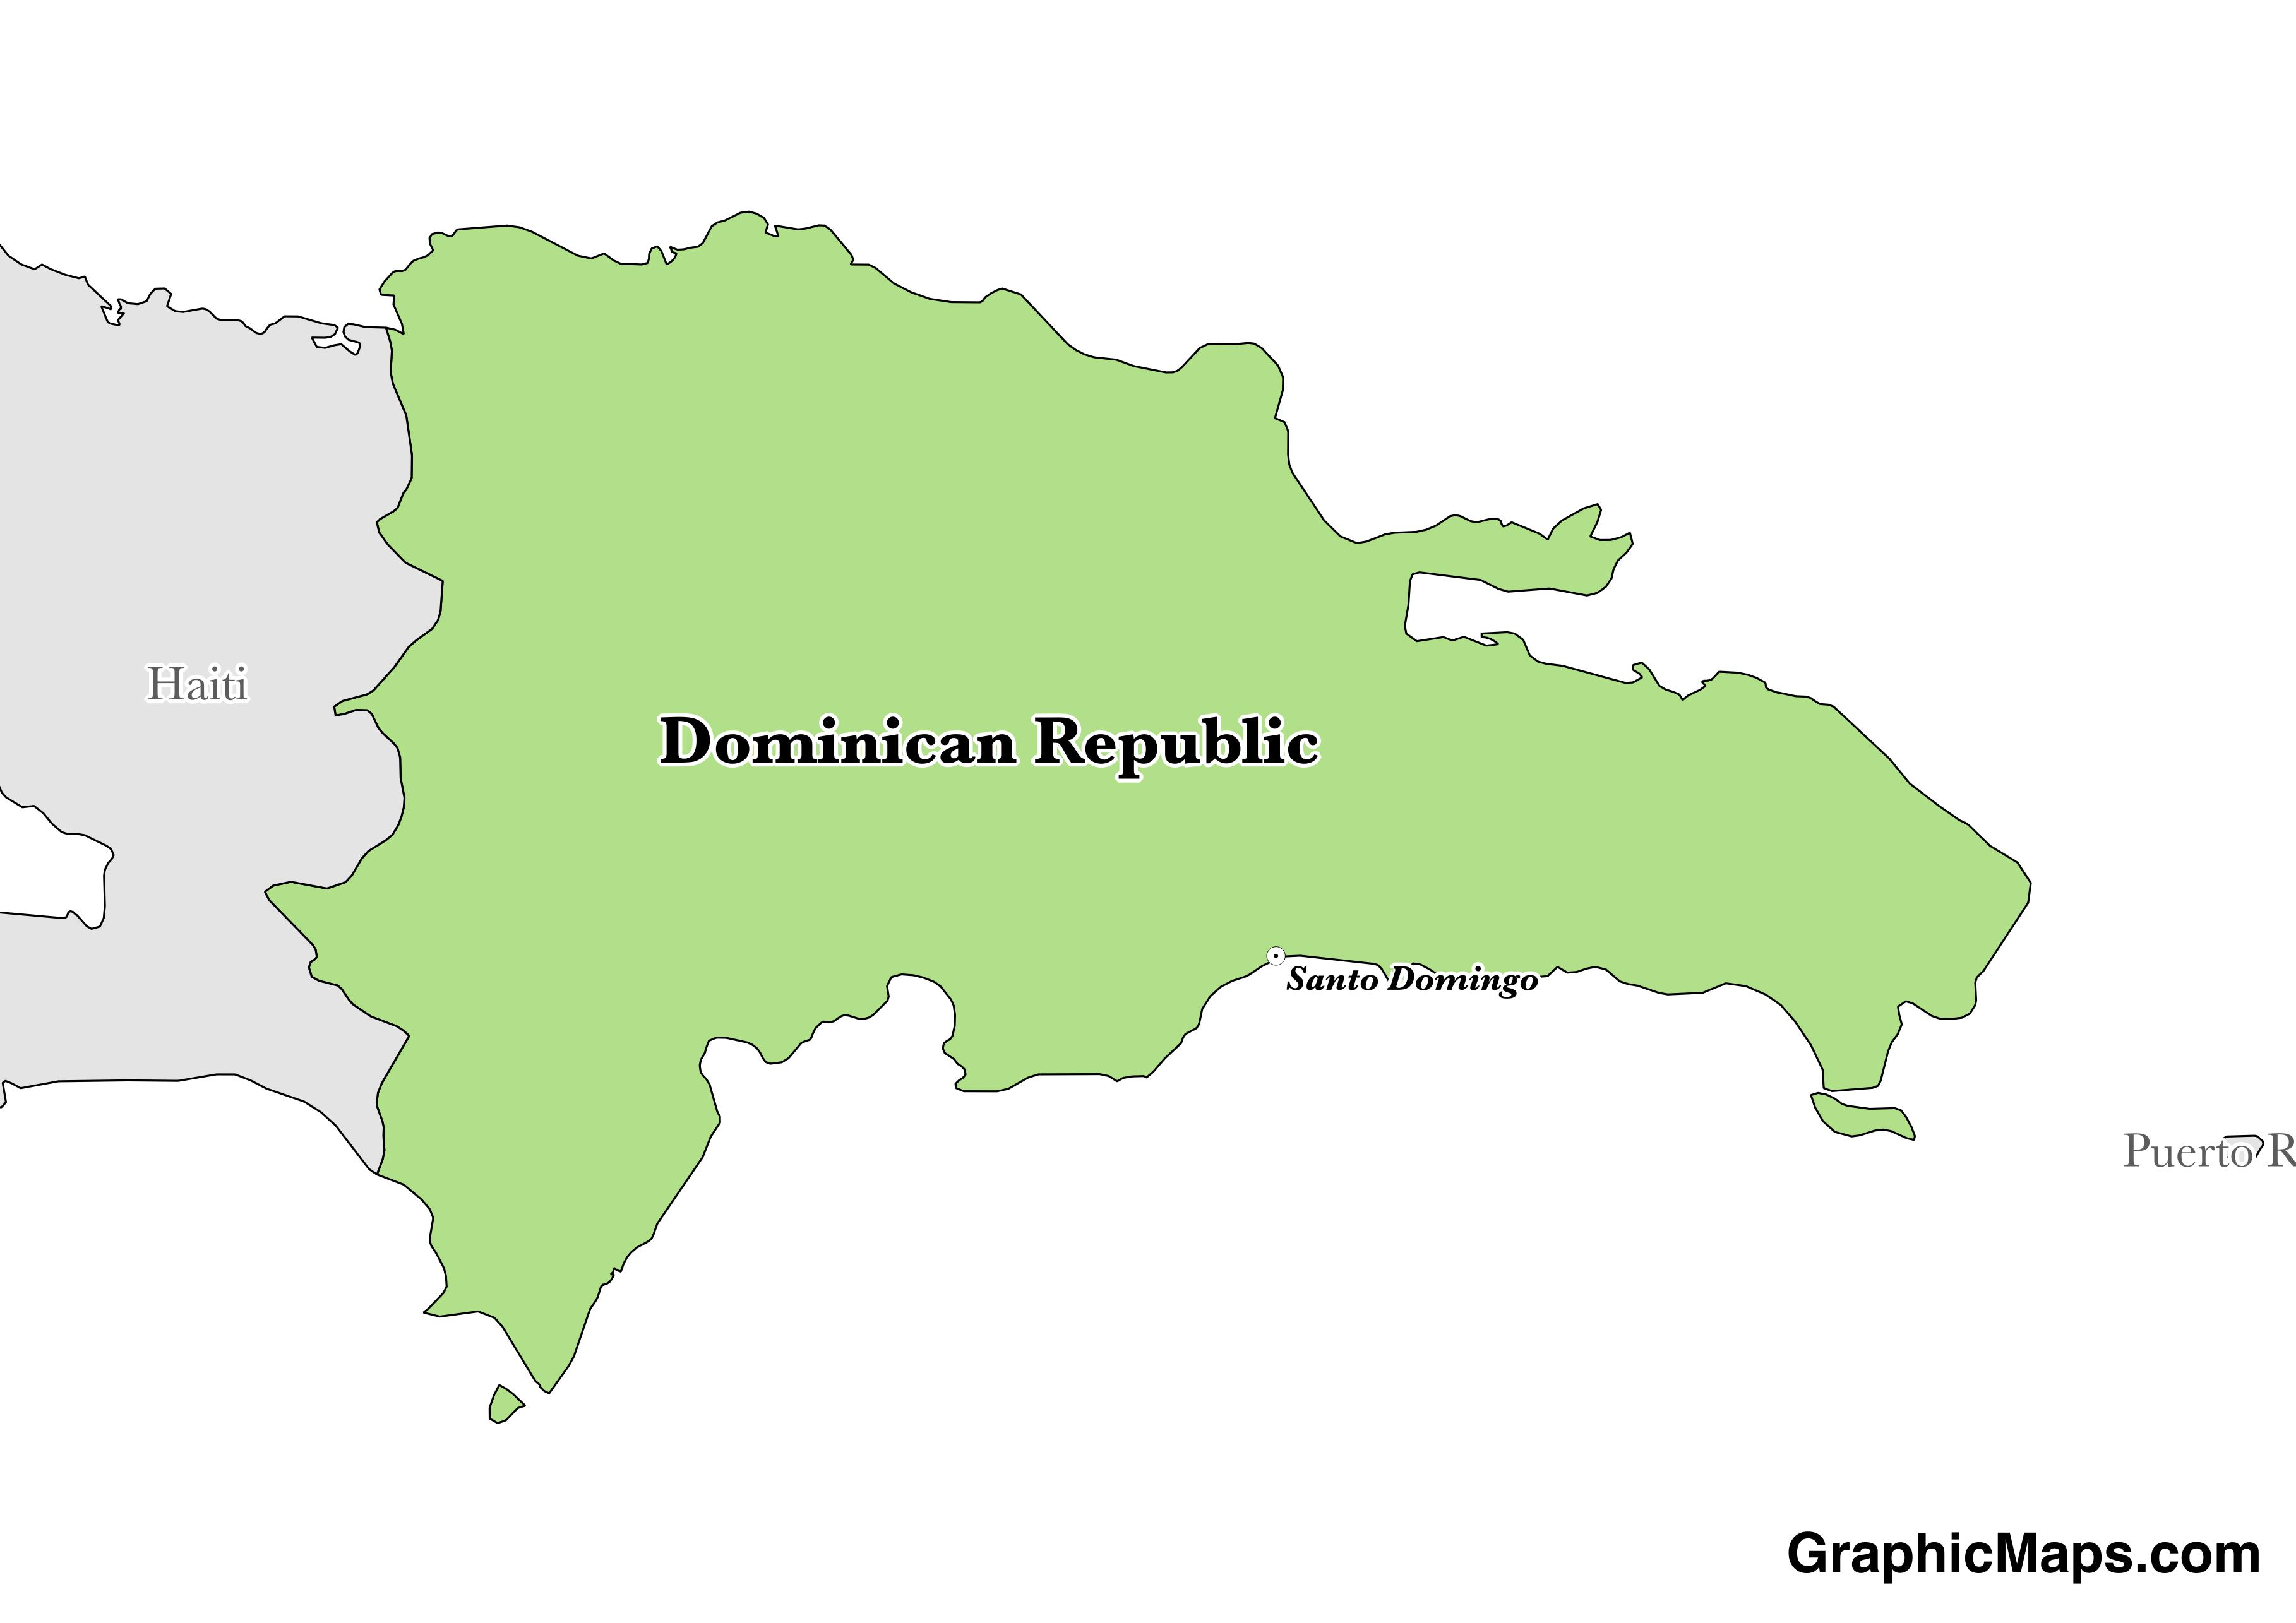 Map showing the location of Dominican Republic